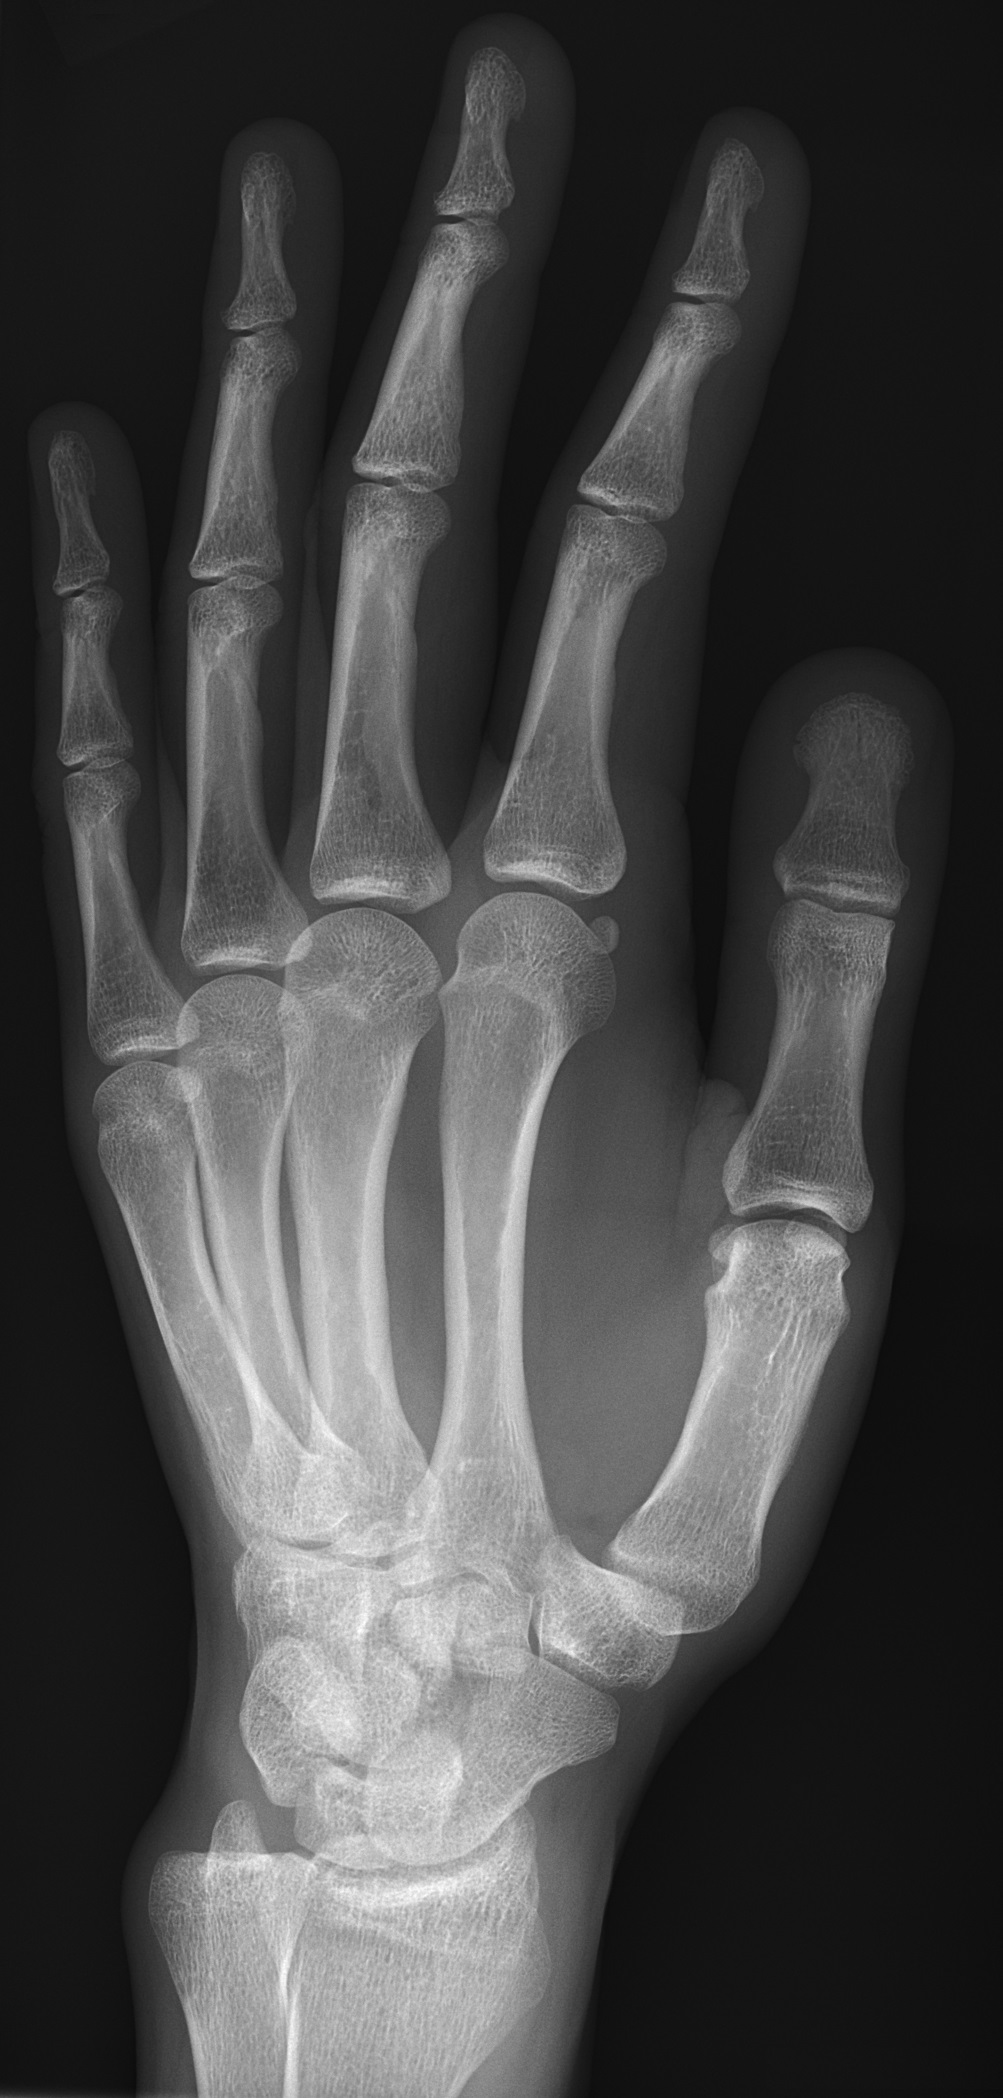 File:X-ray of normal hand by oblique projection.jpg - Wikimedia Commons